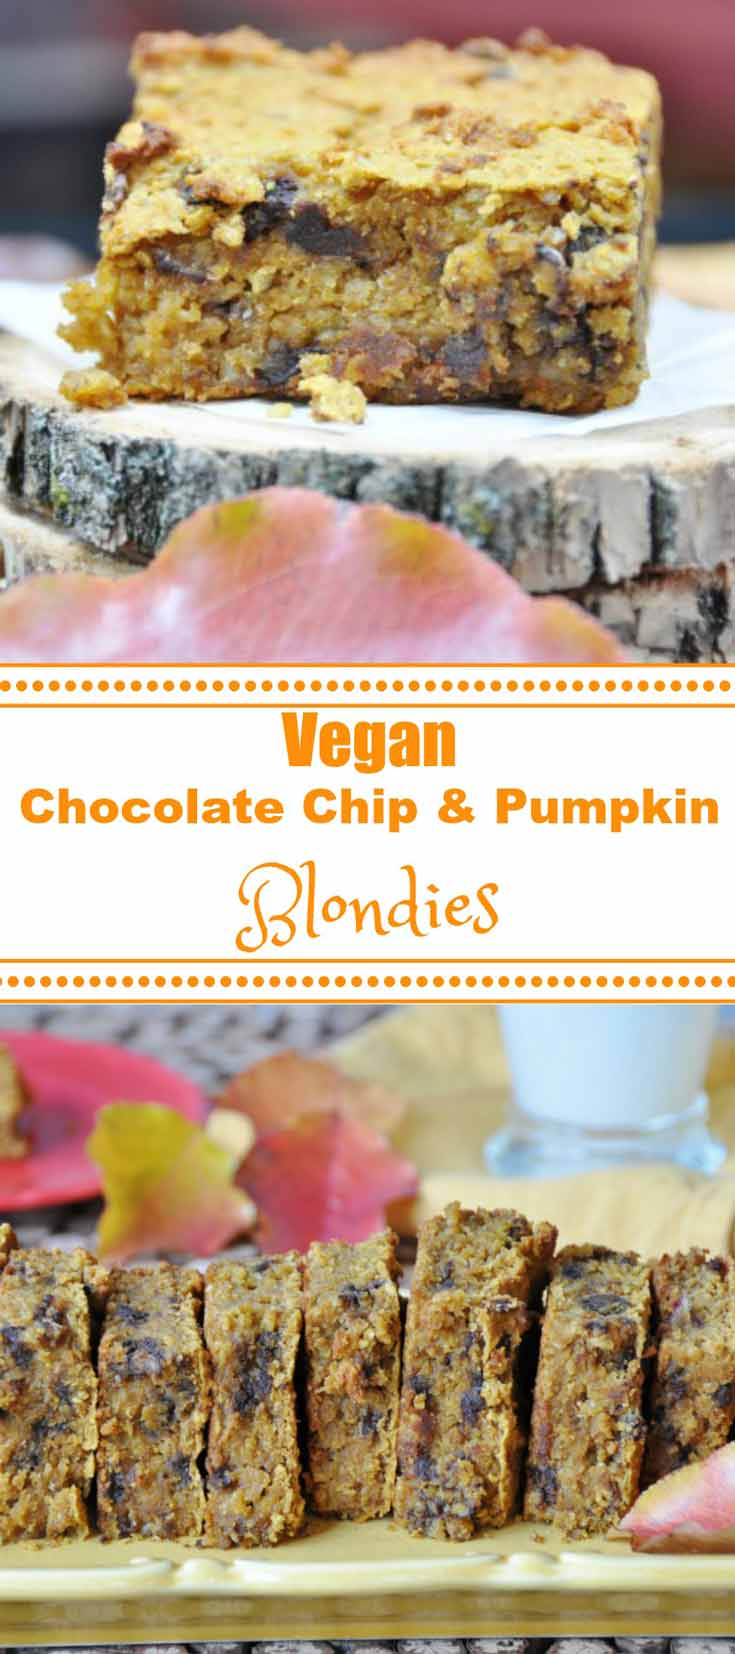 Delicious pumpkin and chocolate chip blondies made with chickpeas! www.veganosity.com